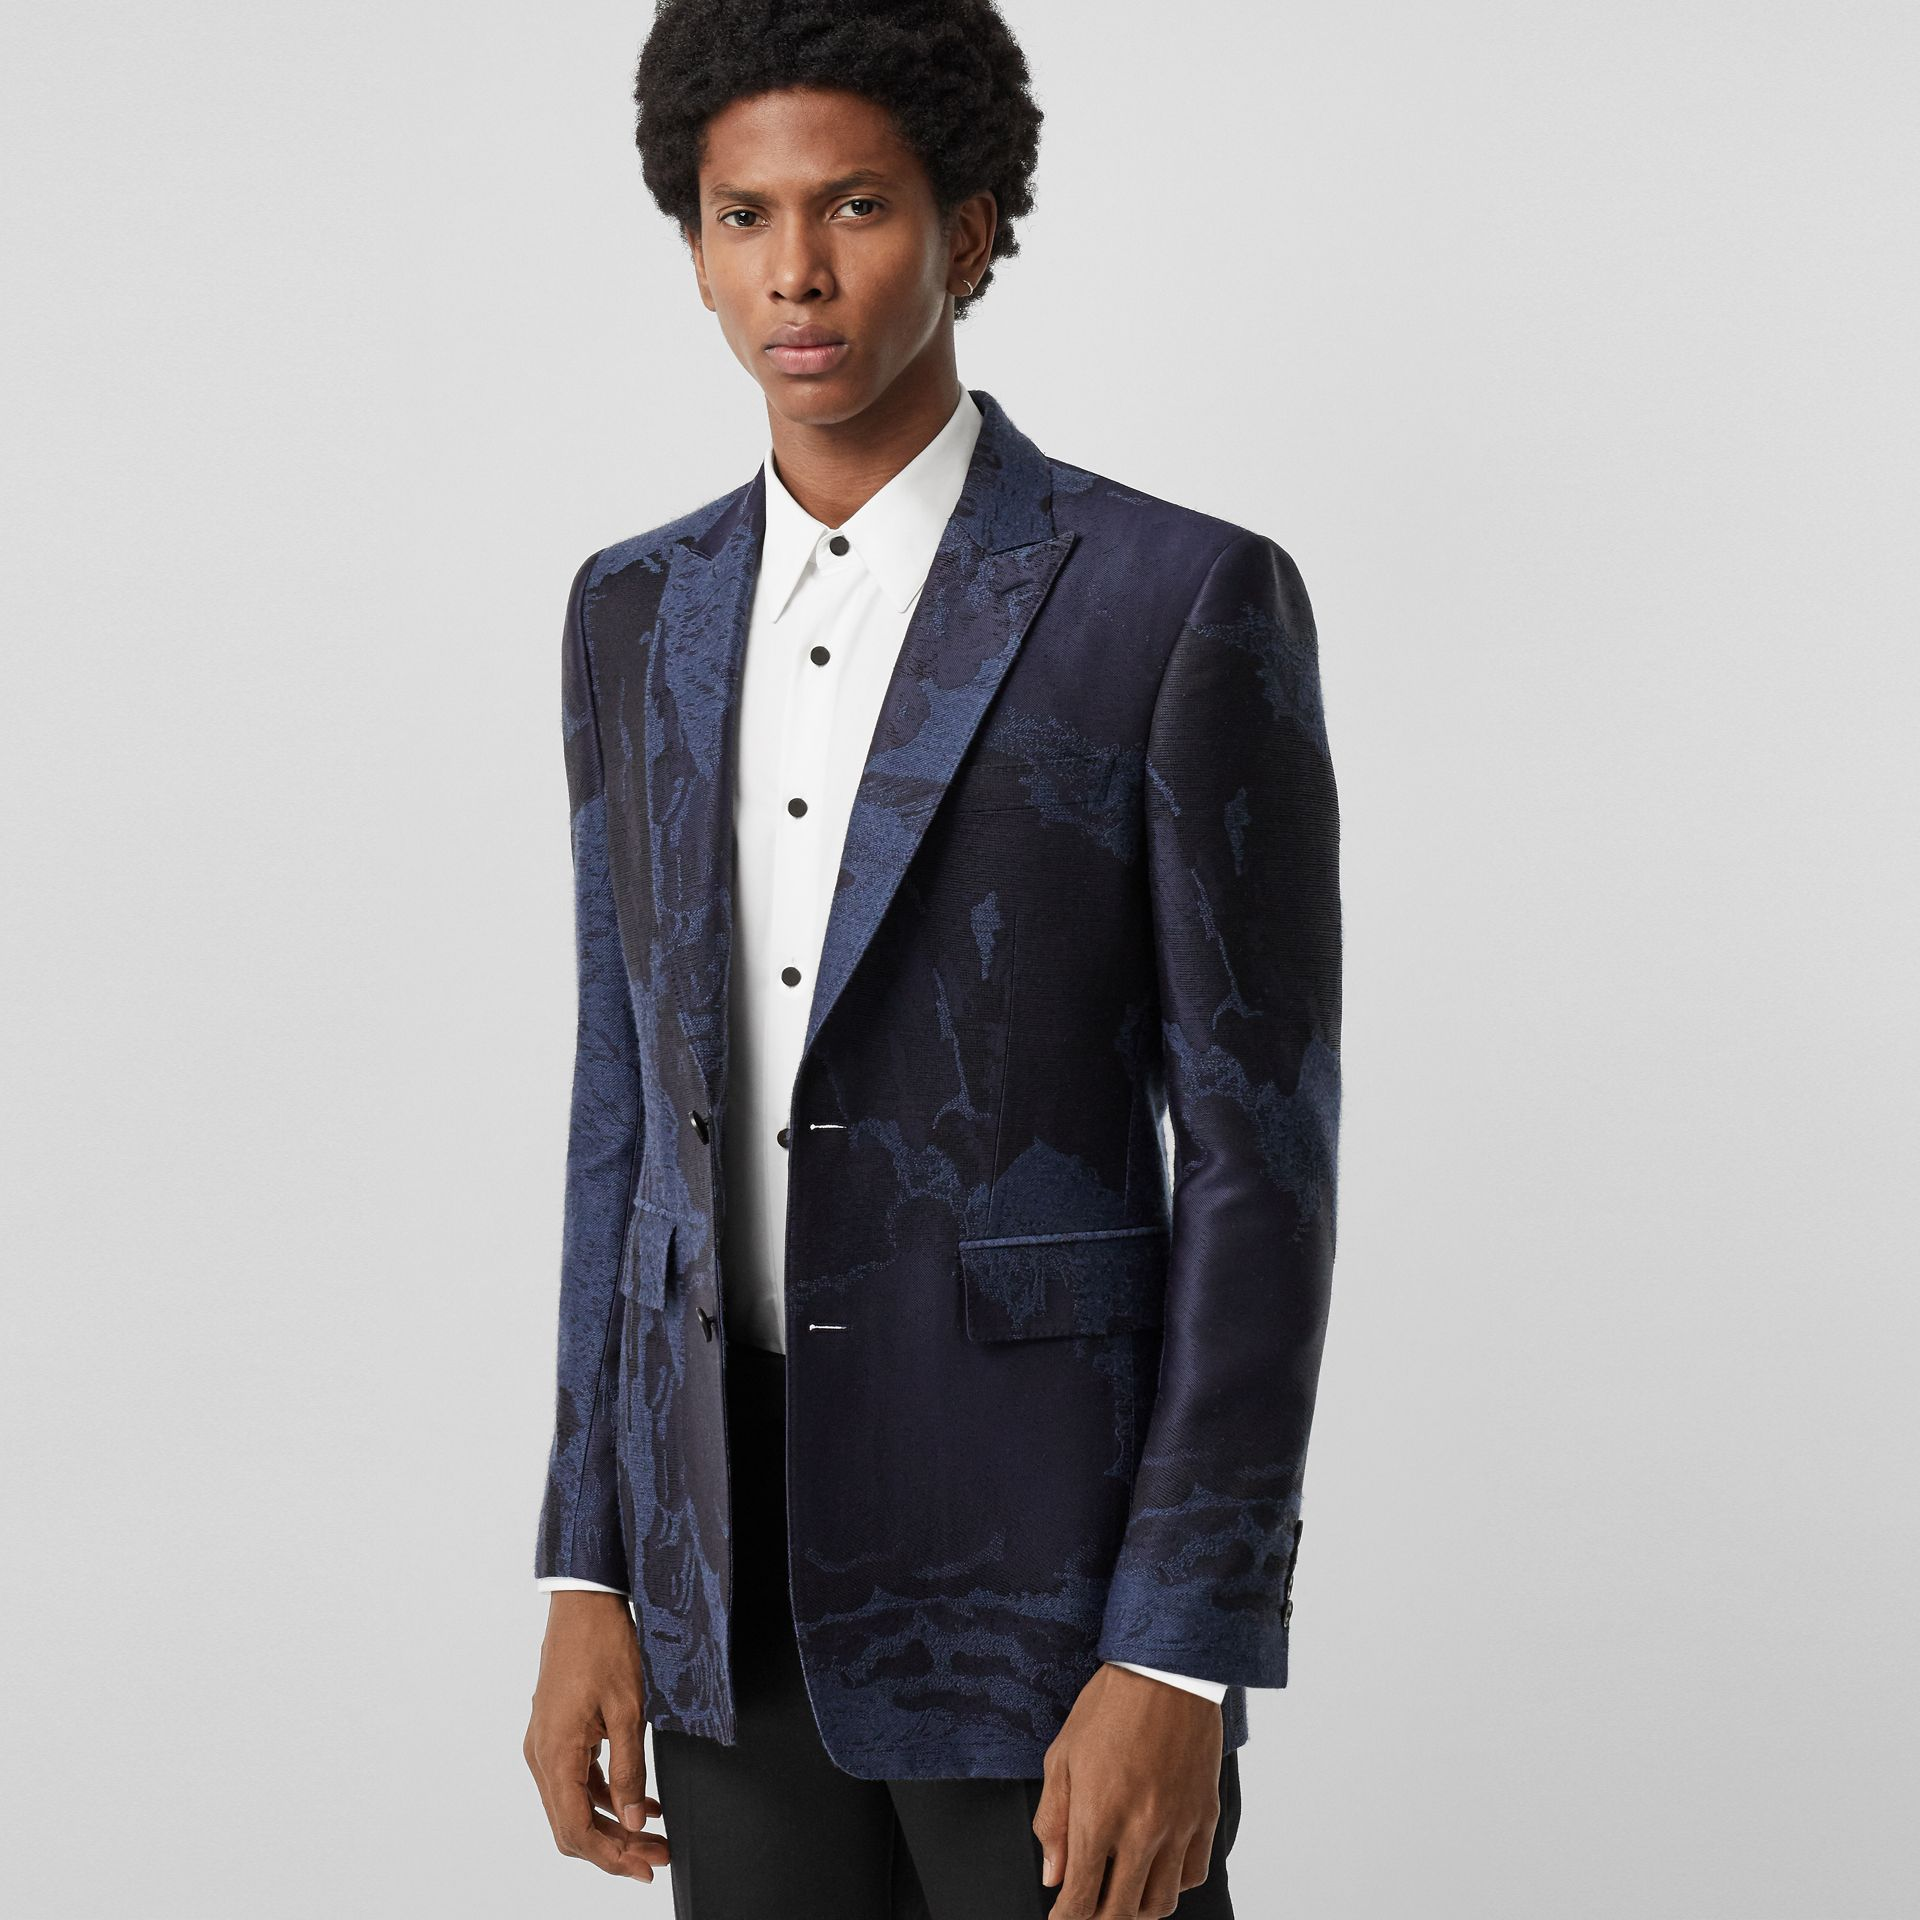 Classic Fit Dreamscape Wool Blend Tailored Jacket in Midnight Blue - Men | Burberry United States - gallery image 5